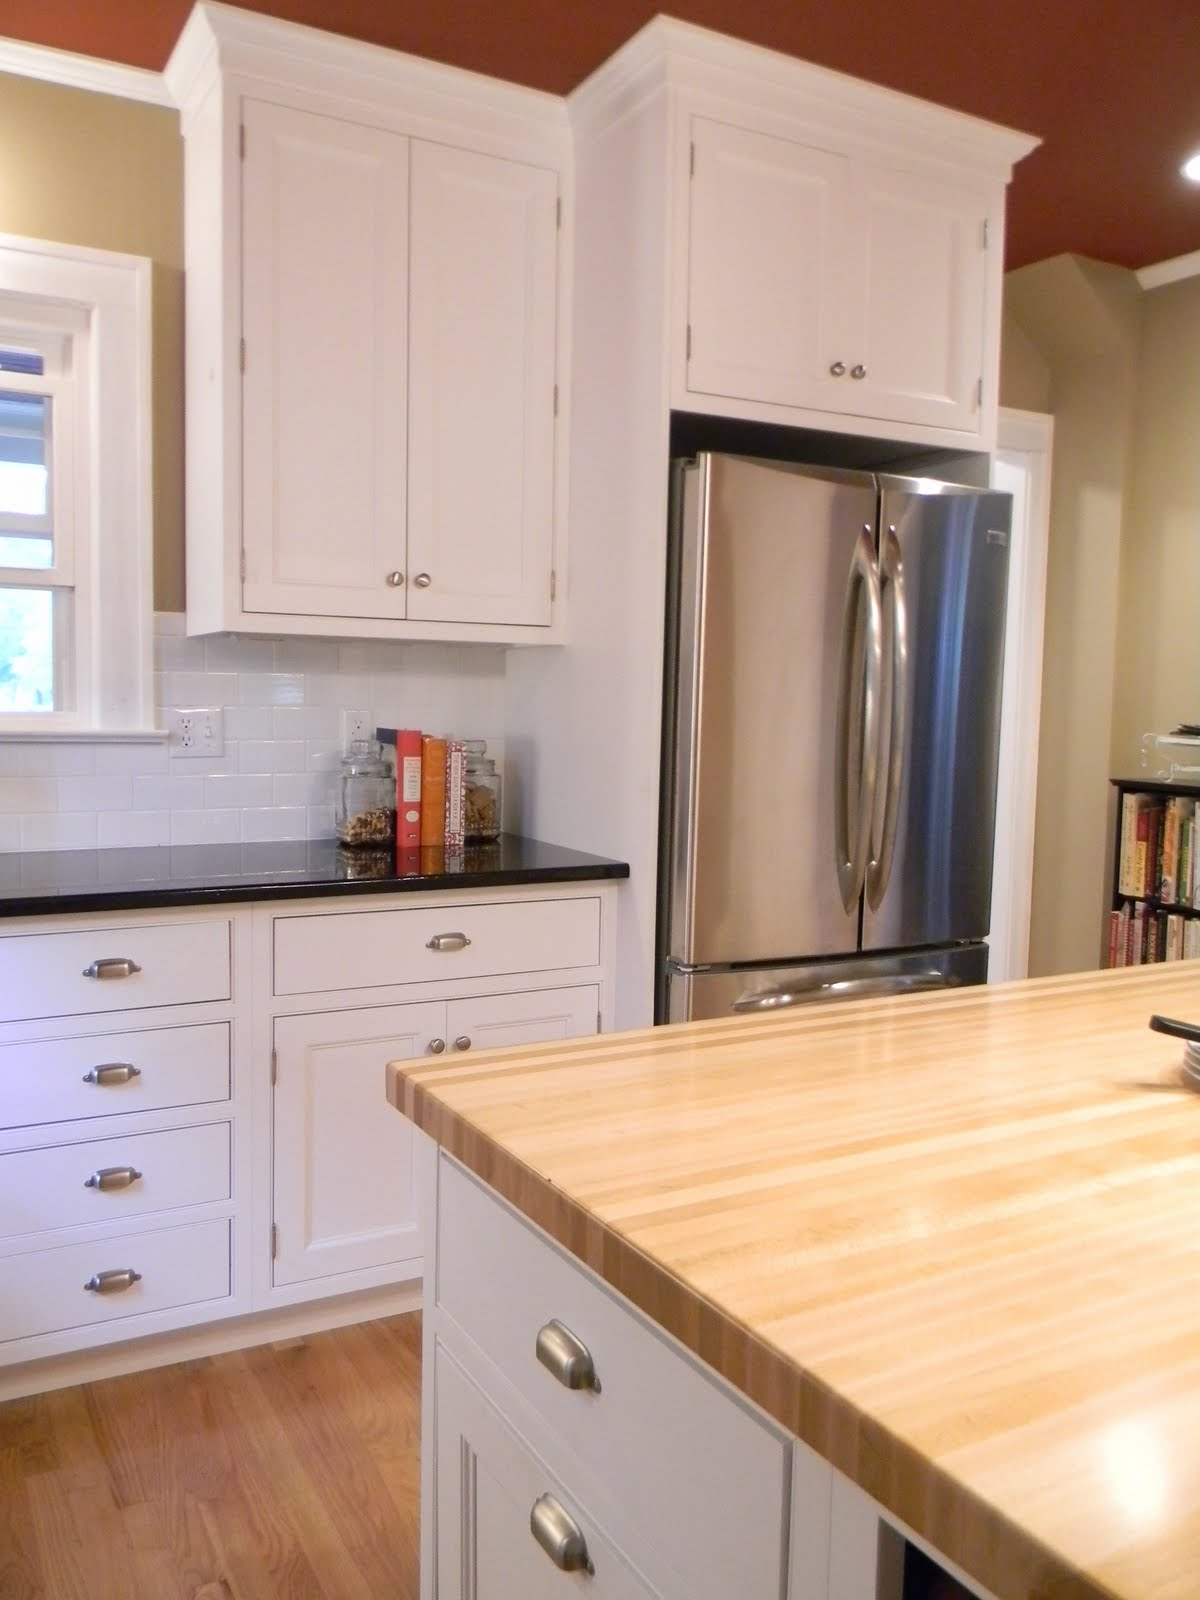 free standing cabinets for kitchen single handle faucet with sprayer julie fergus, asid | nh interior designer: cabinet details